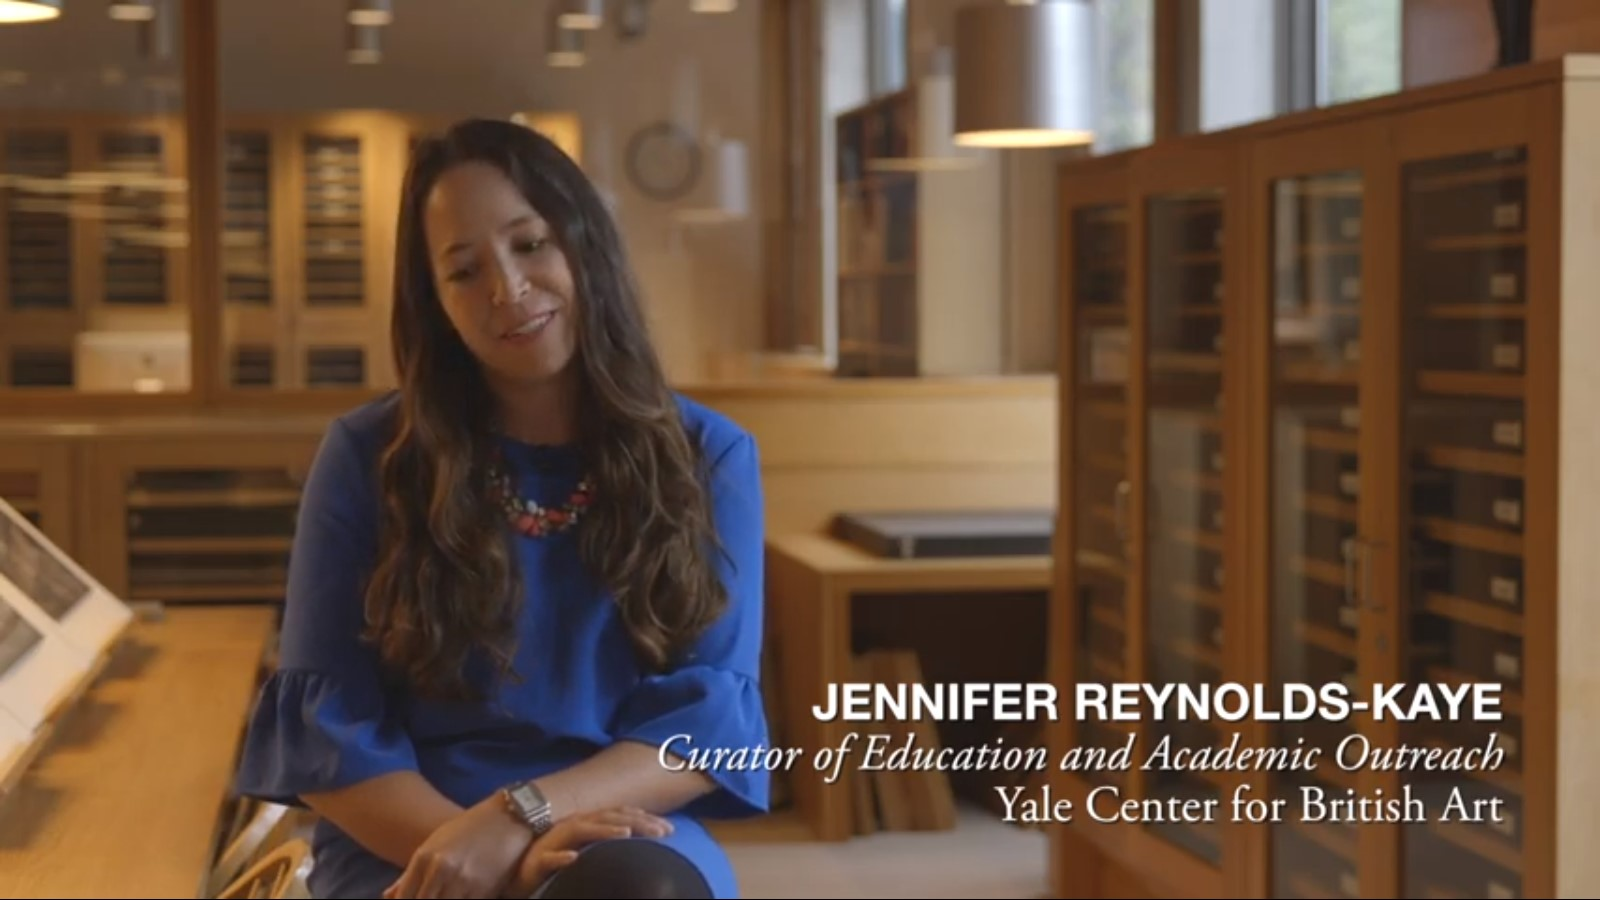 Interdisciplinary Practice with Jennifer Reynolds-Kaye